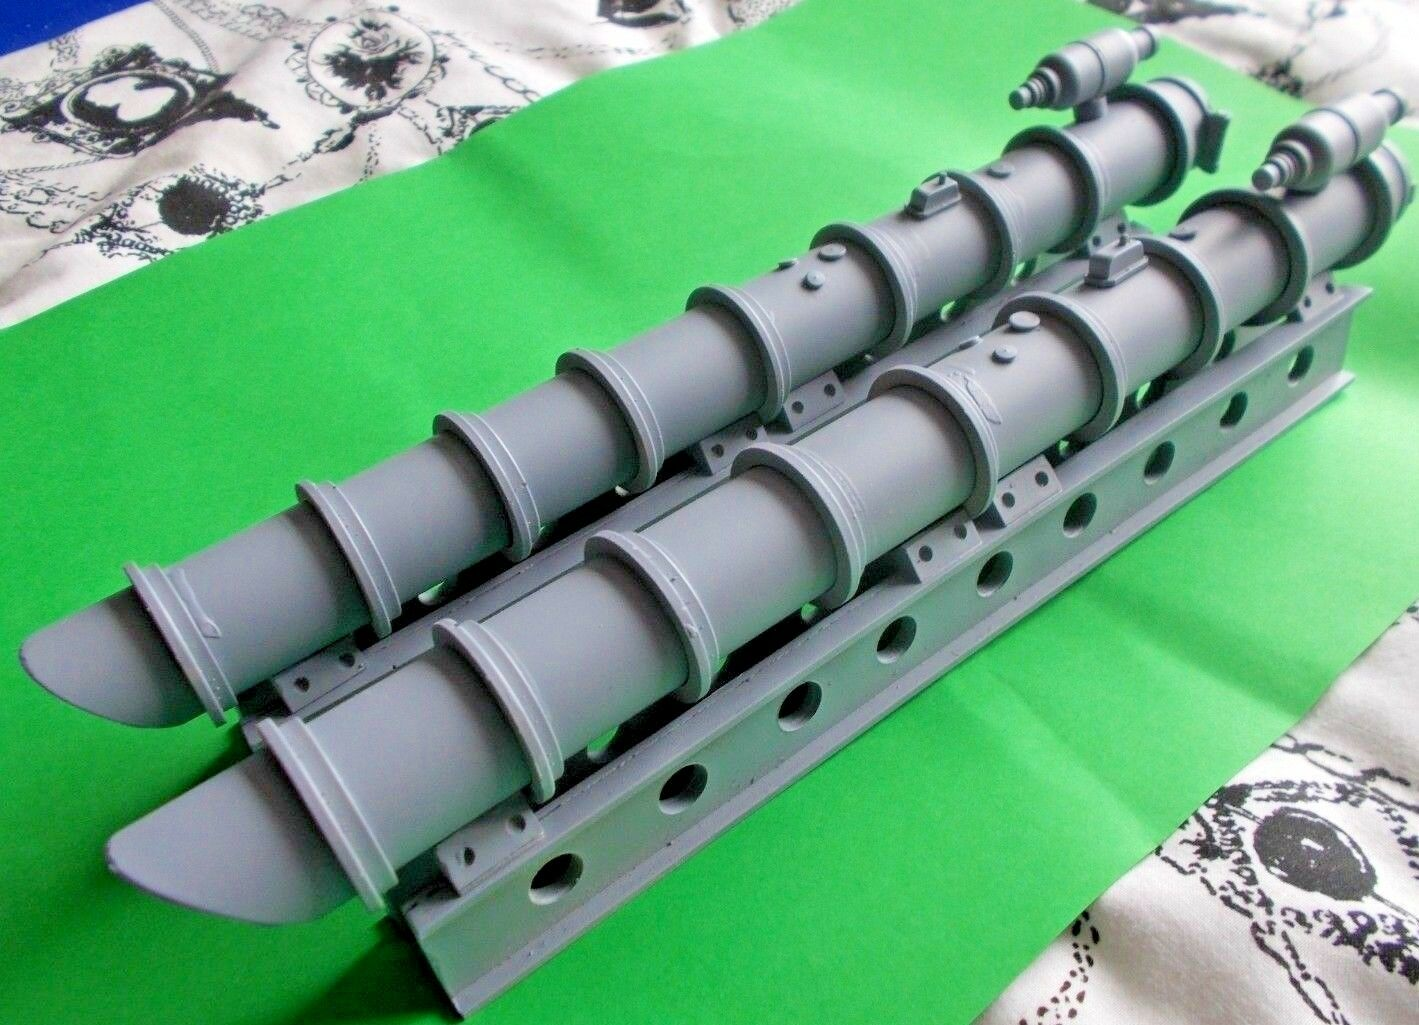 21  Torpedo Tubes in 1 24th Scale. MTB. scale. Model Boat Fittings.